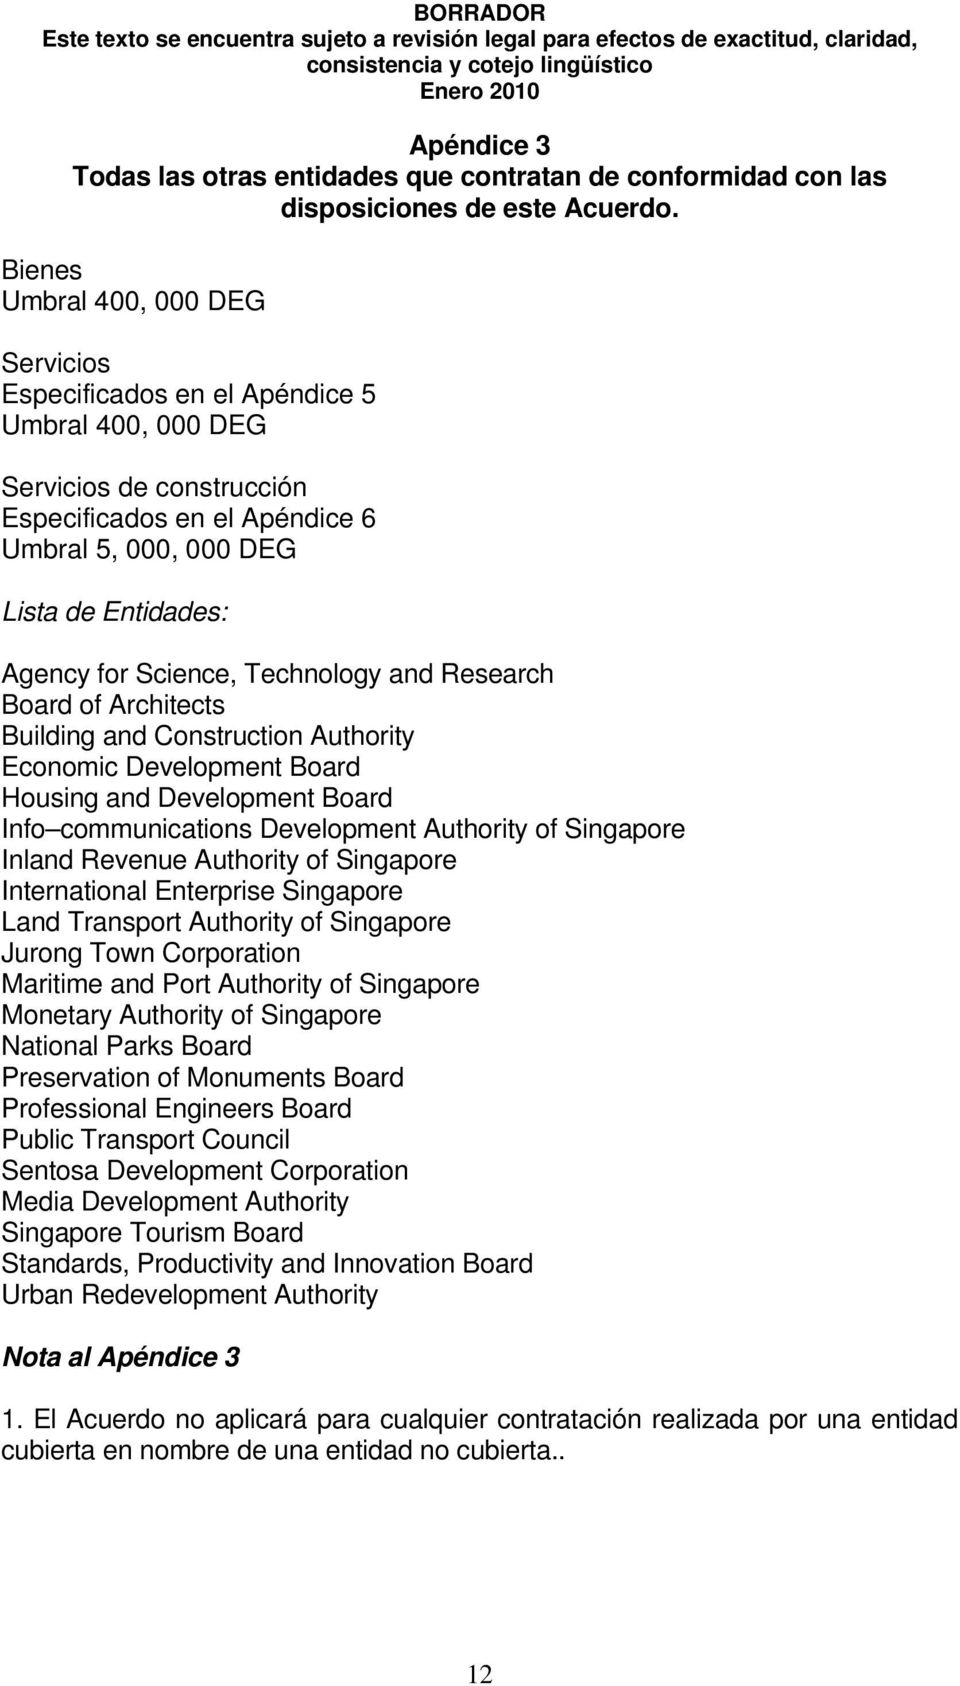 Science, Technology and Research Board of Architects Building and Construction Authority Economic Development Board Housing and Development Board Info communications Development Authority of